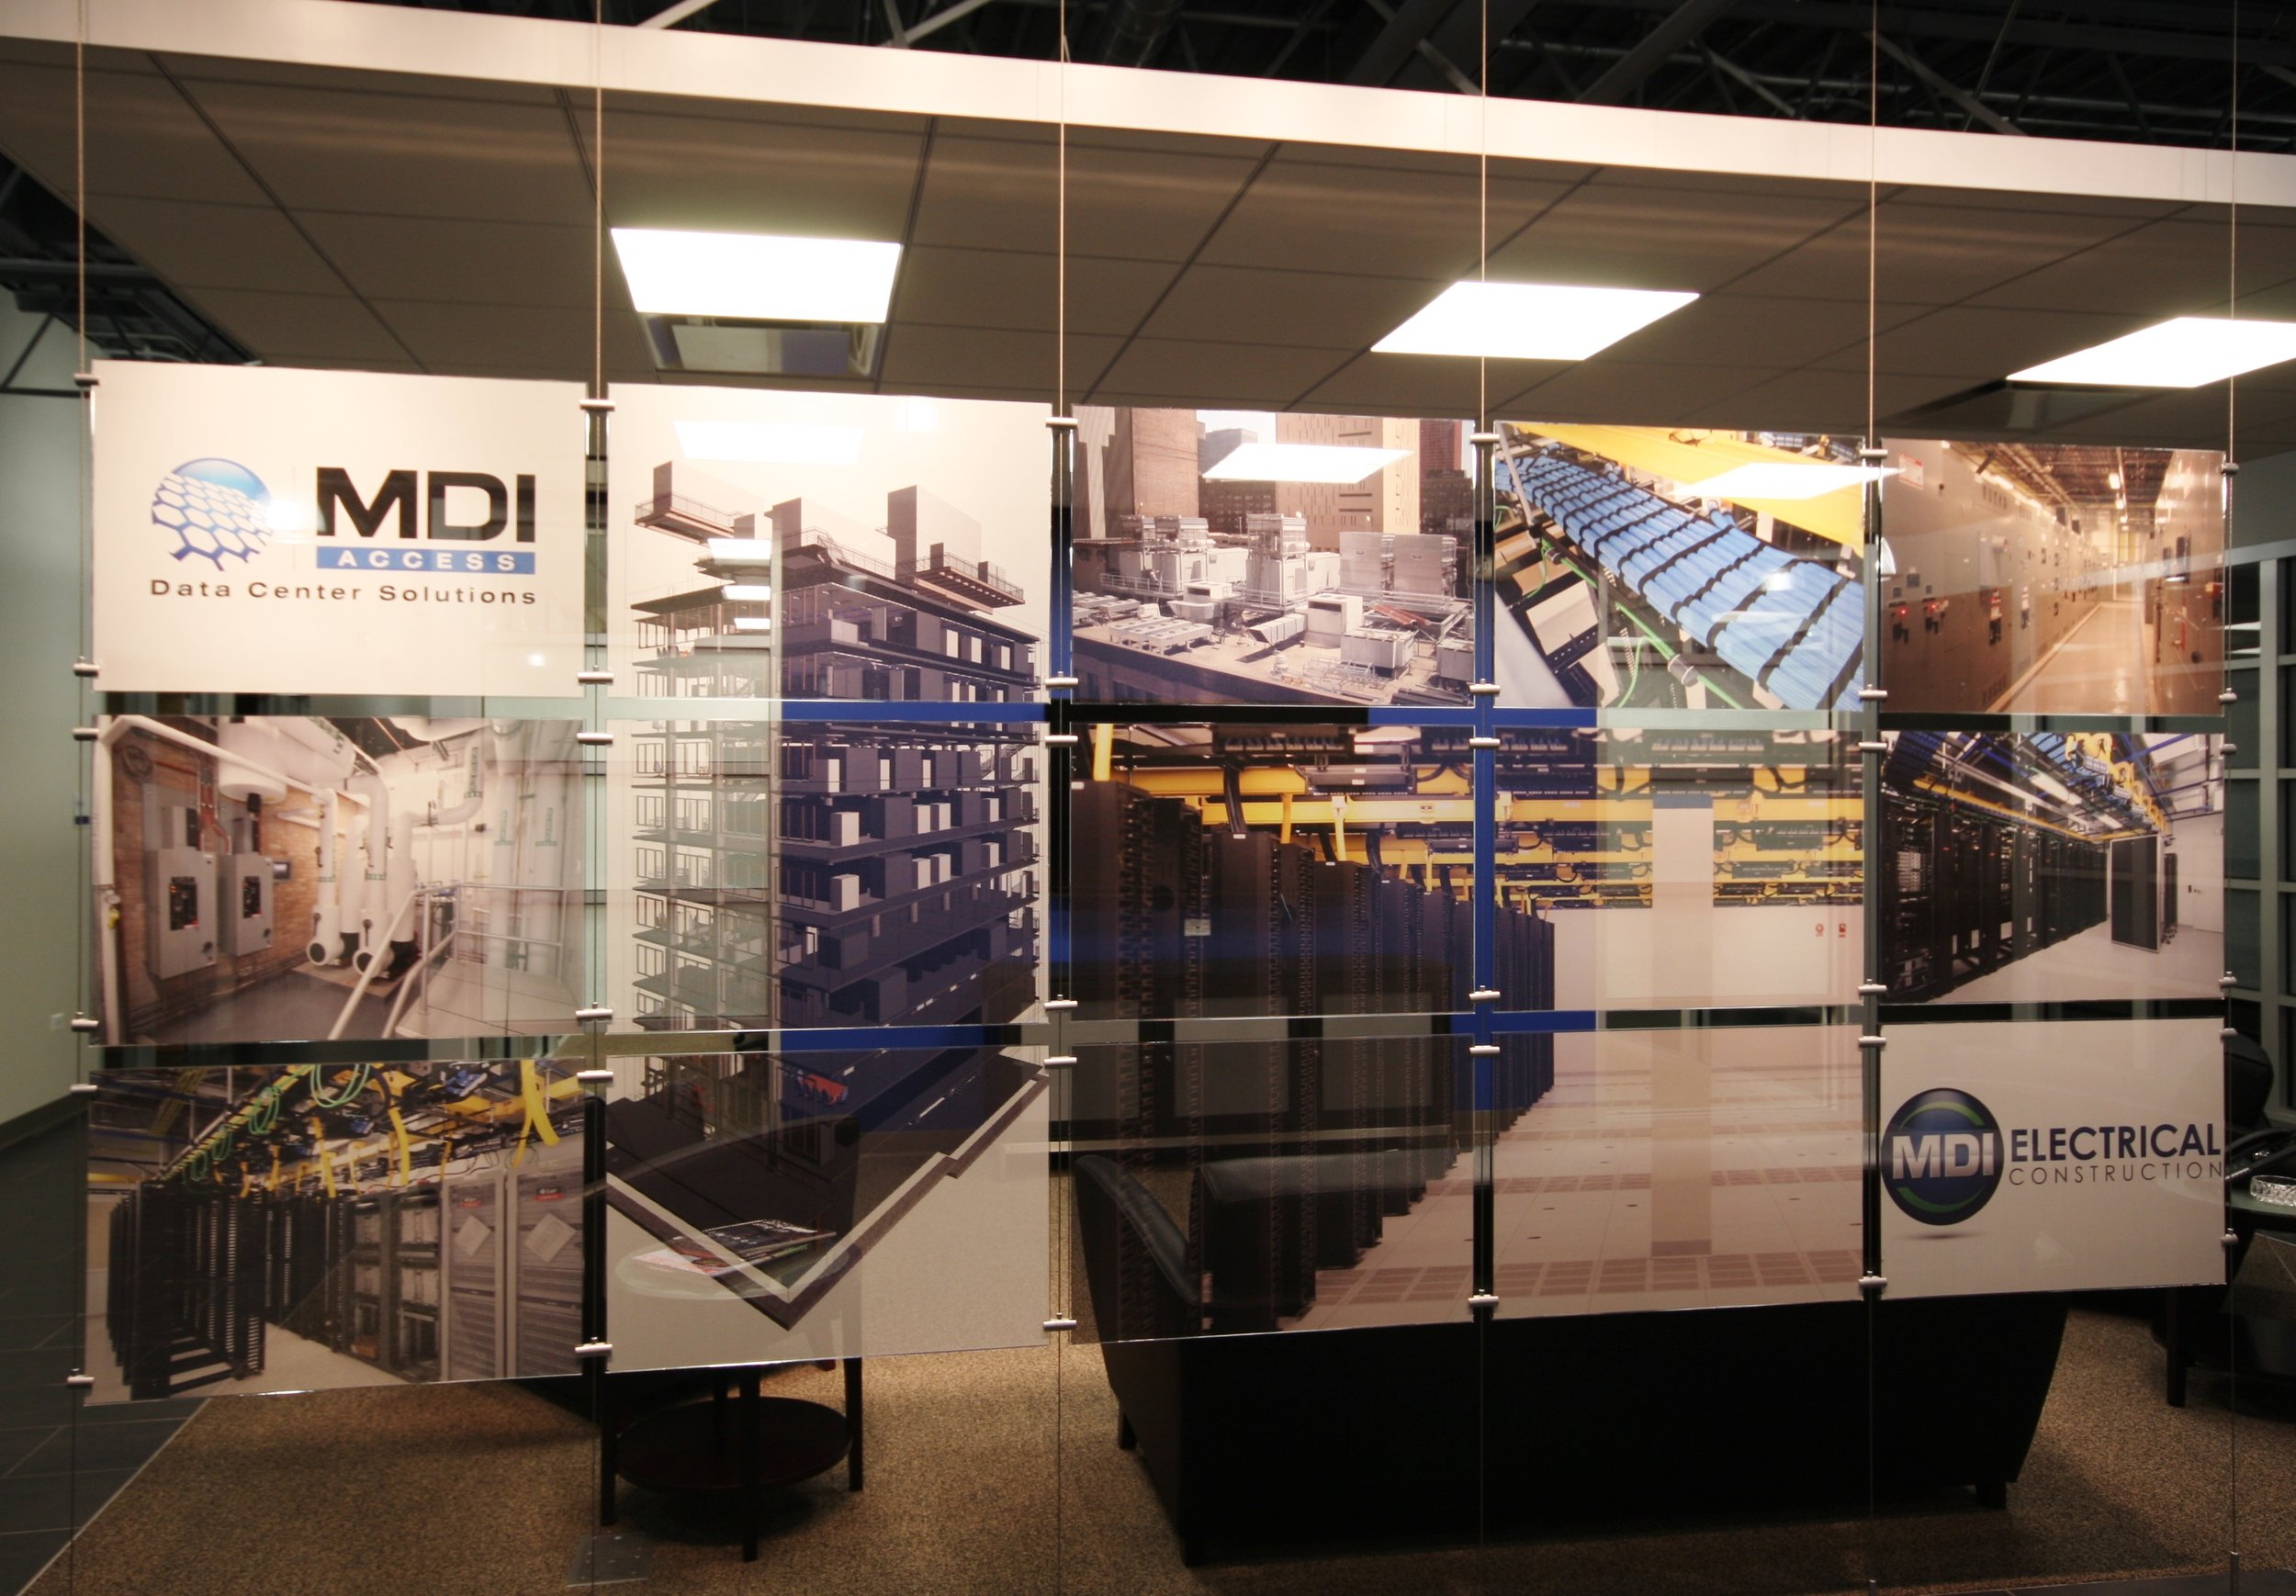 MDI ACCESS CORPORATE HEADQUARTERS_SIGNAGE.JPG